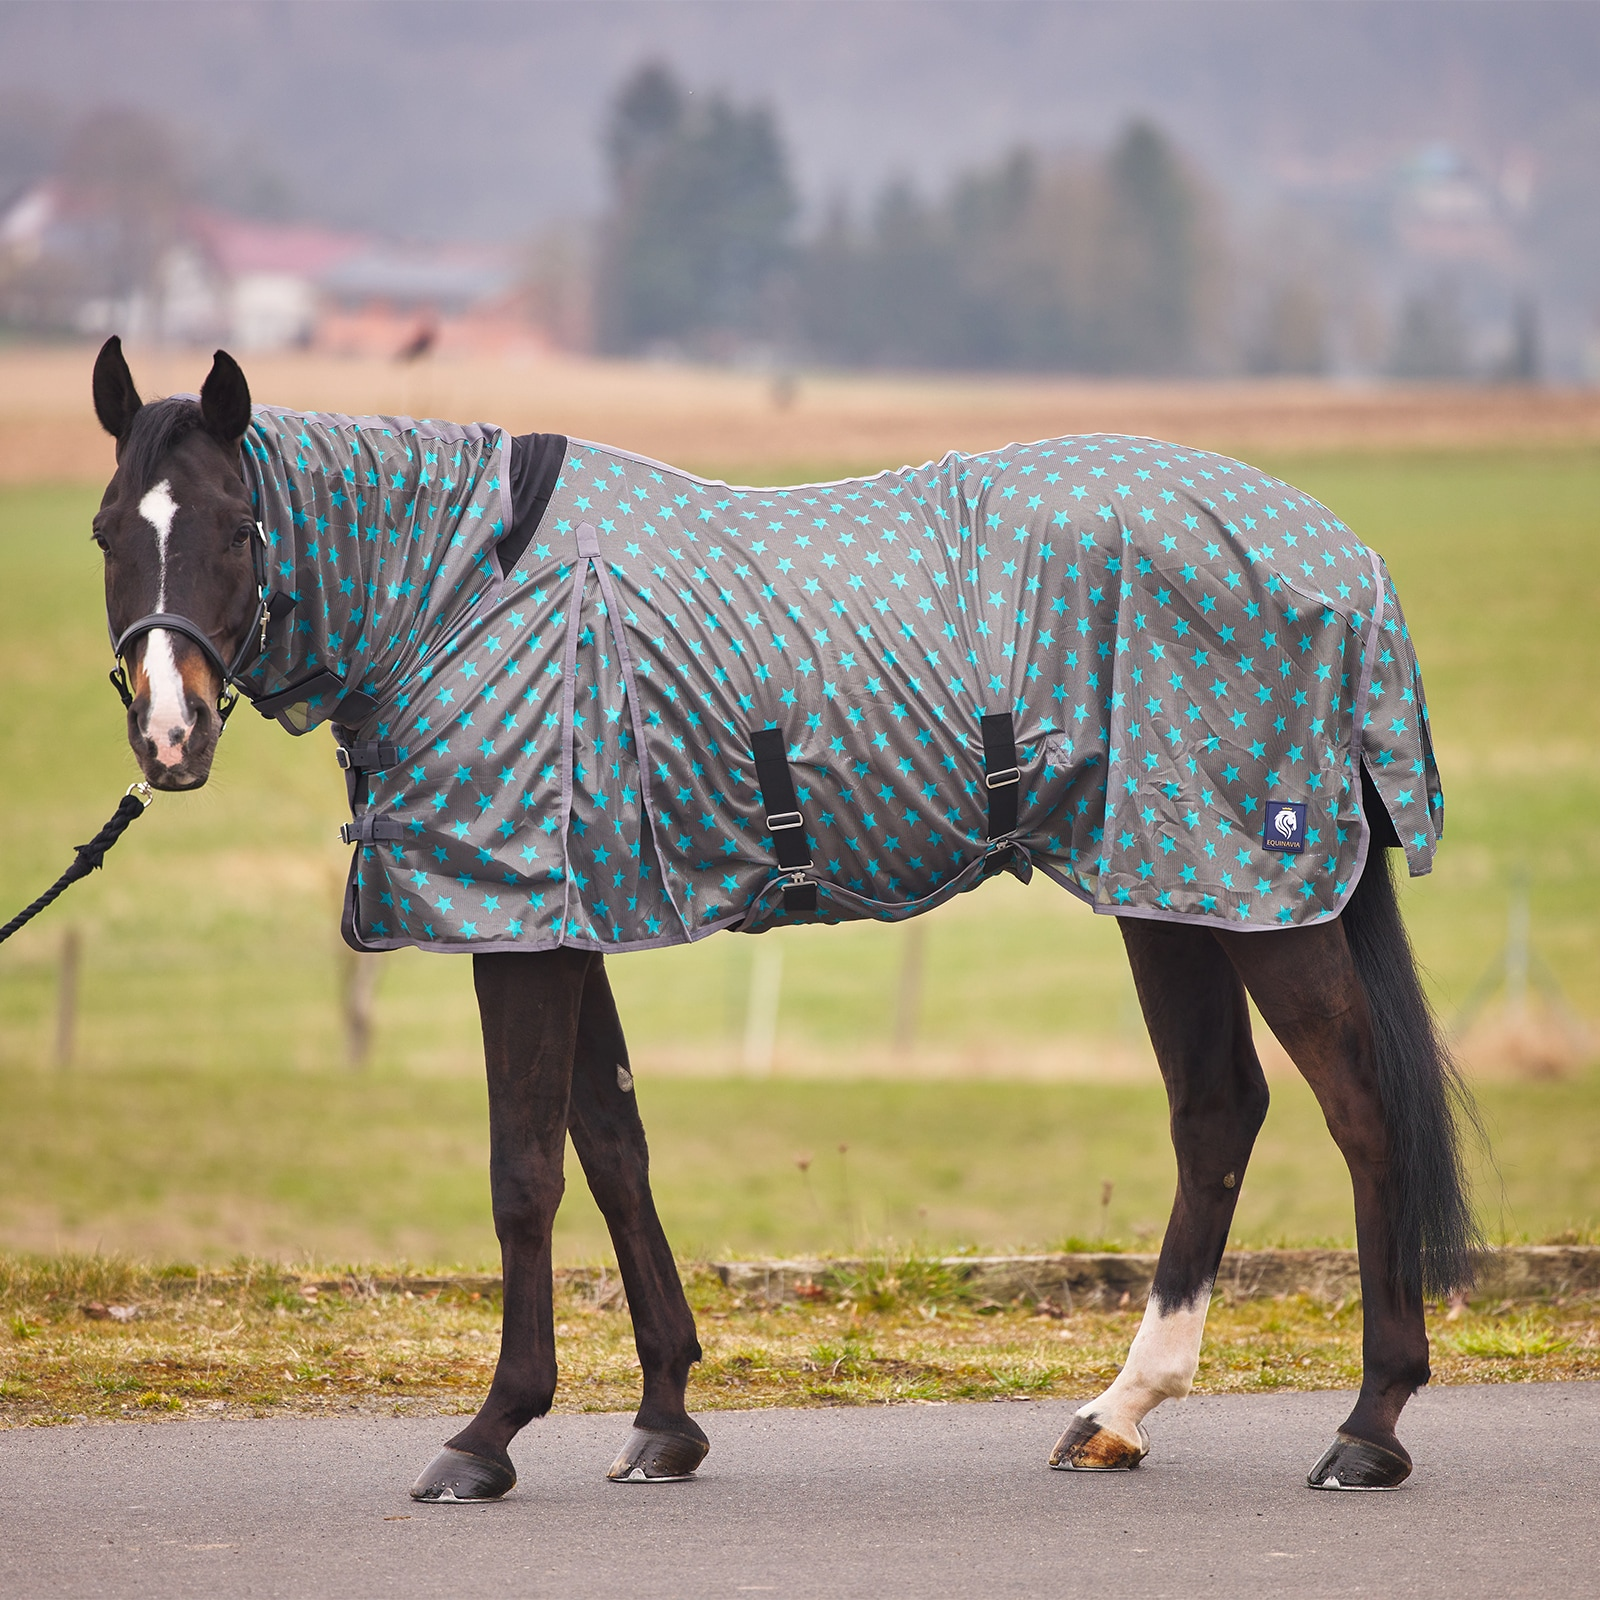 Combo Neck Fly Sheet with Belly Wrap - Grey/Blue Star Print CP2474-G/B/STAR-145